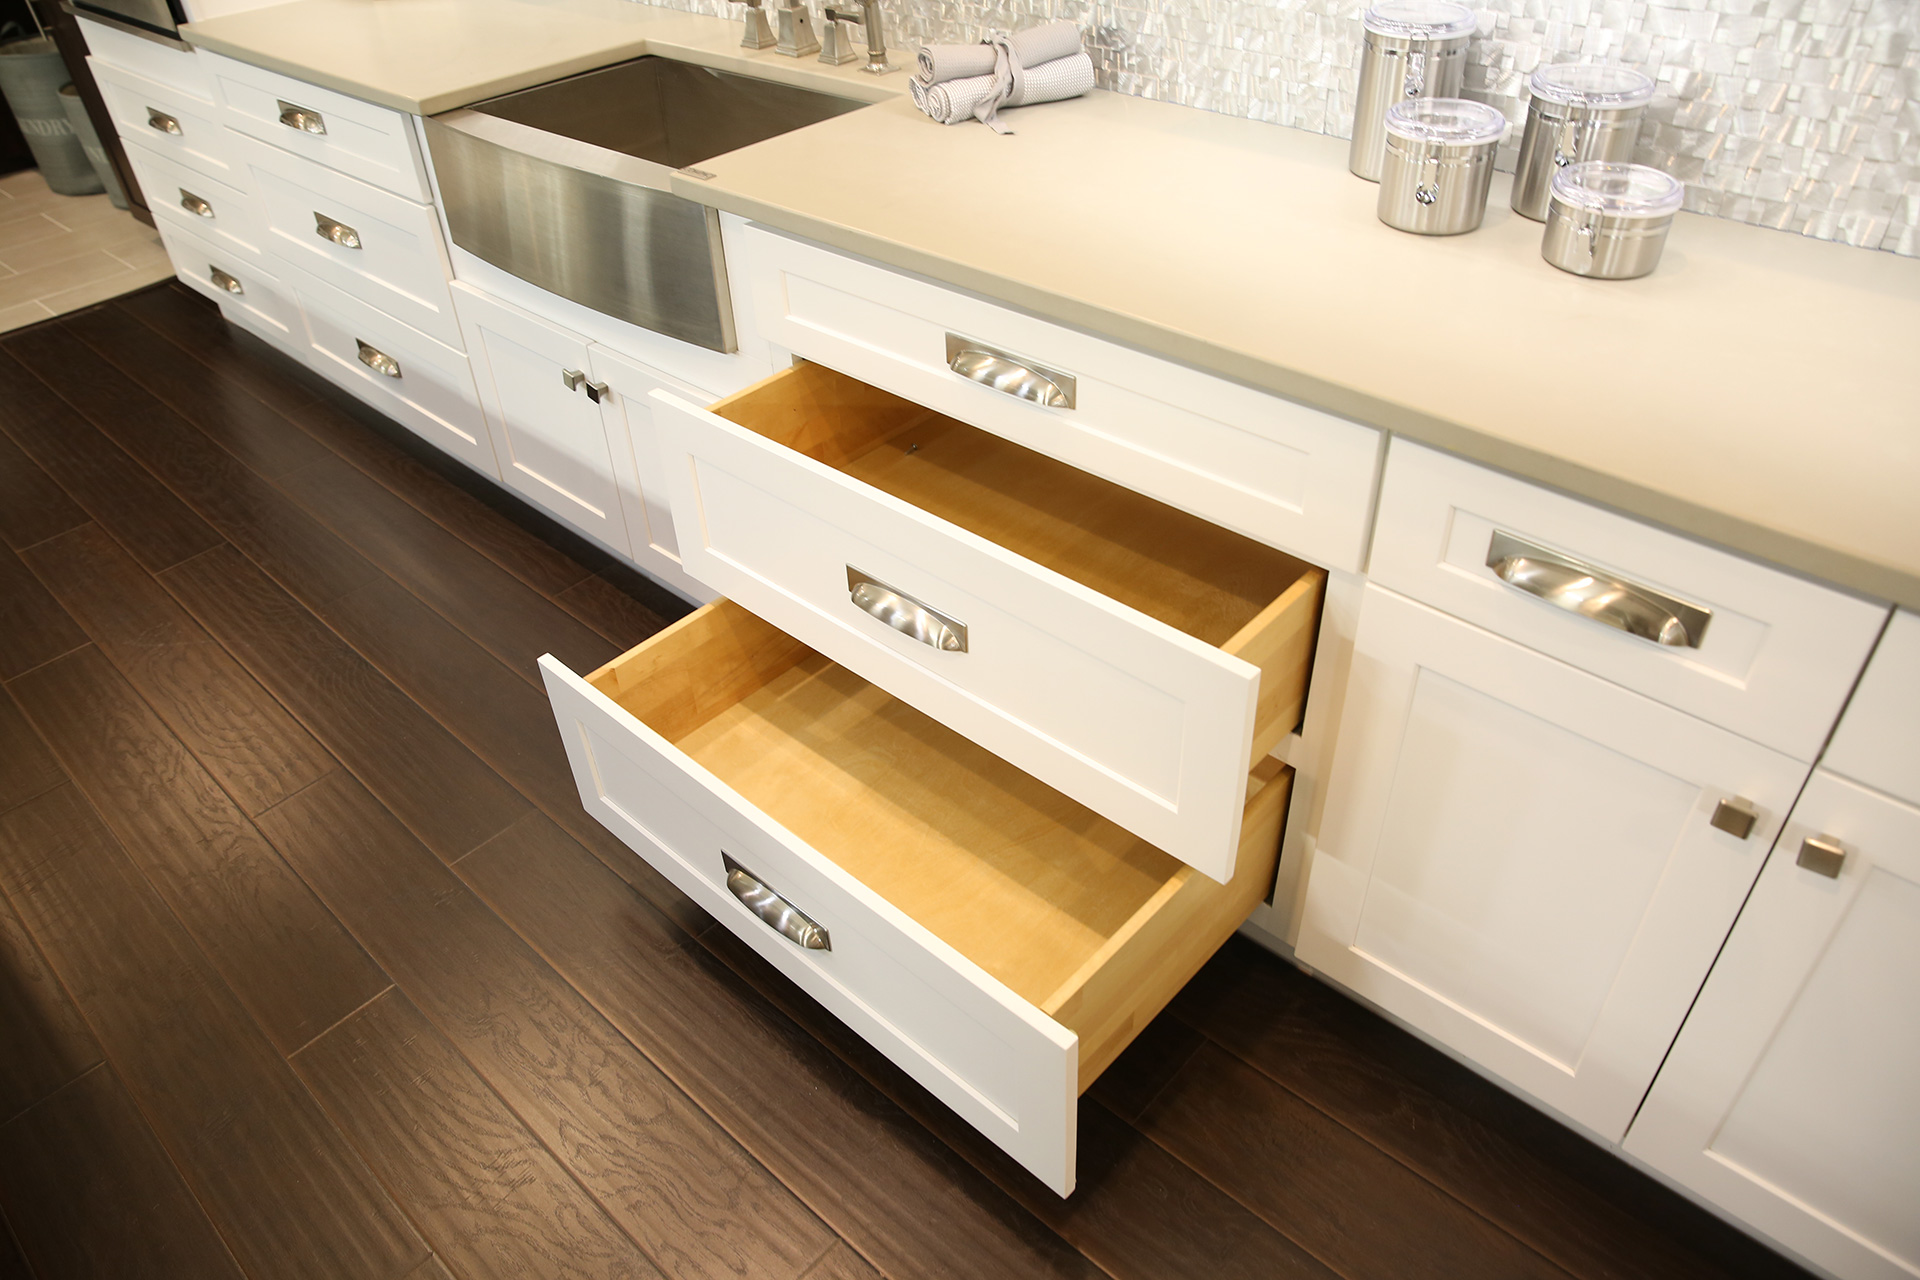 shaker style cabinetry